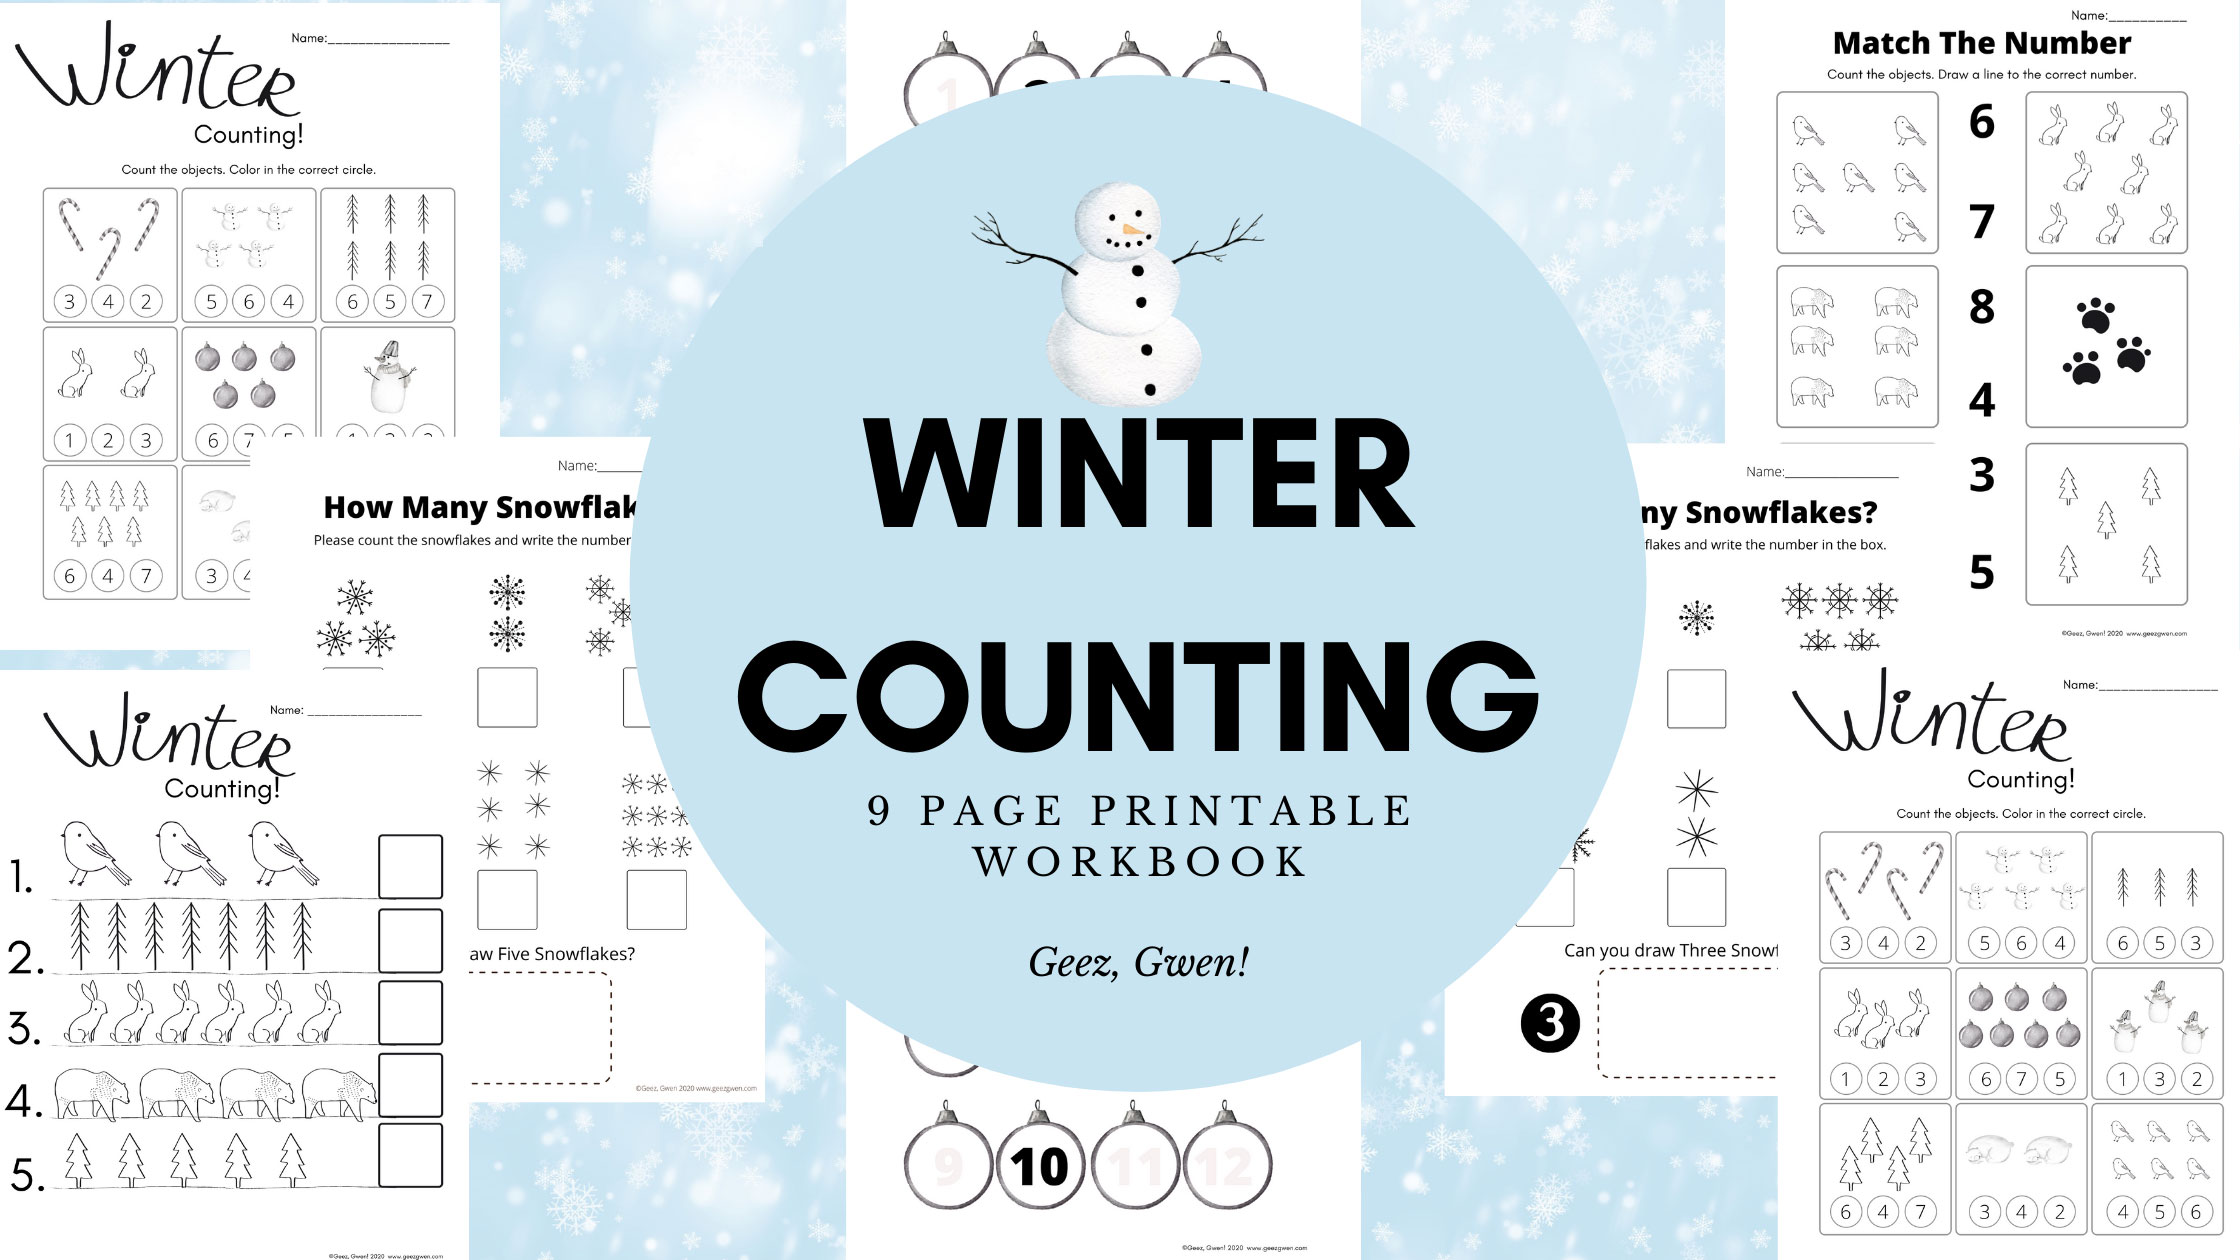 Winter Counting Workbook